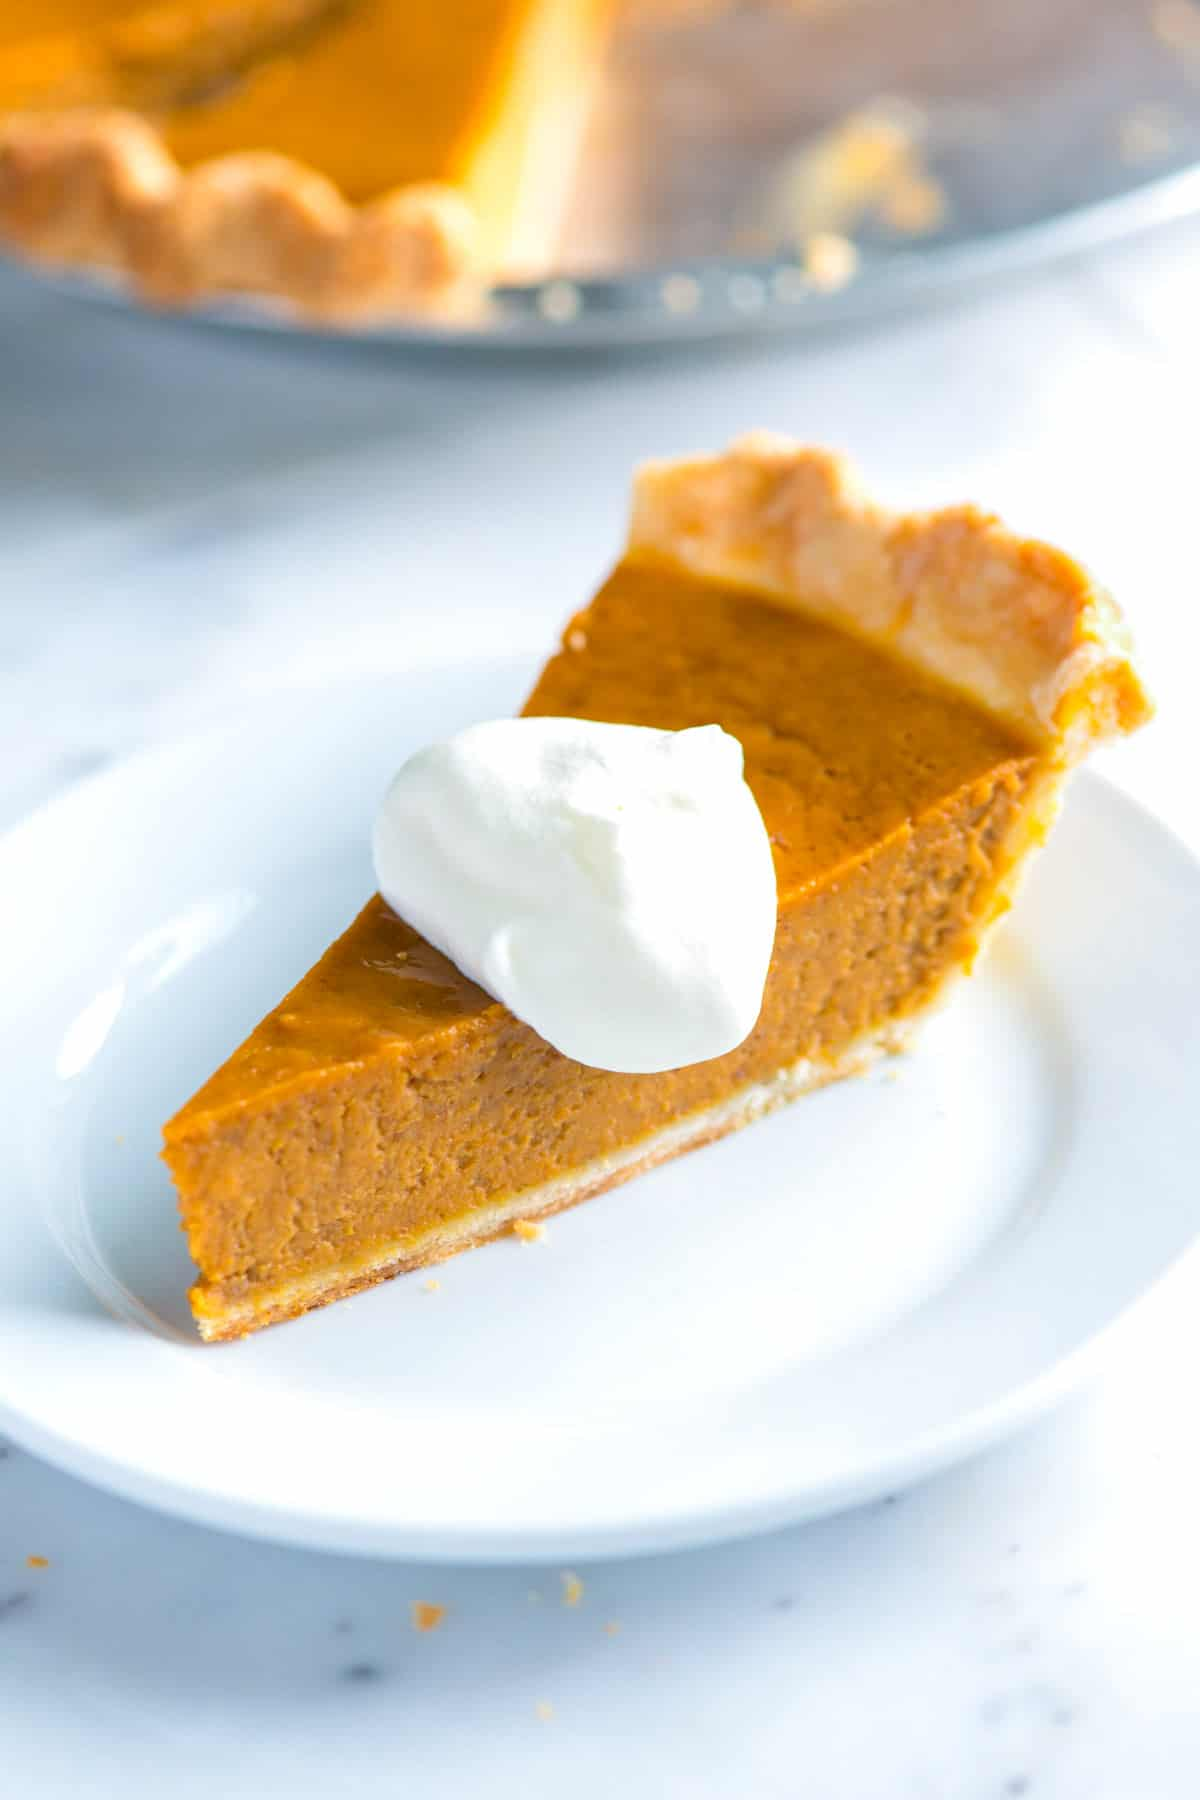 whipped cream on pumpkin pie